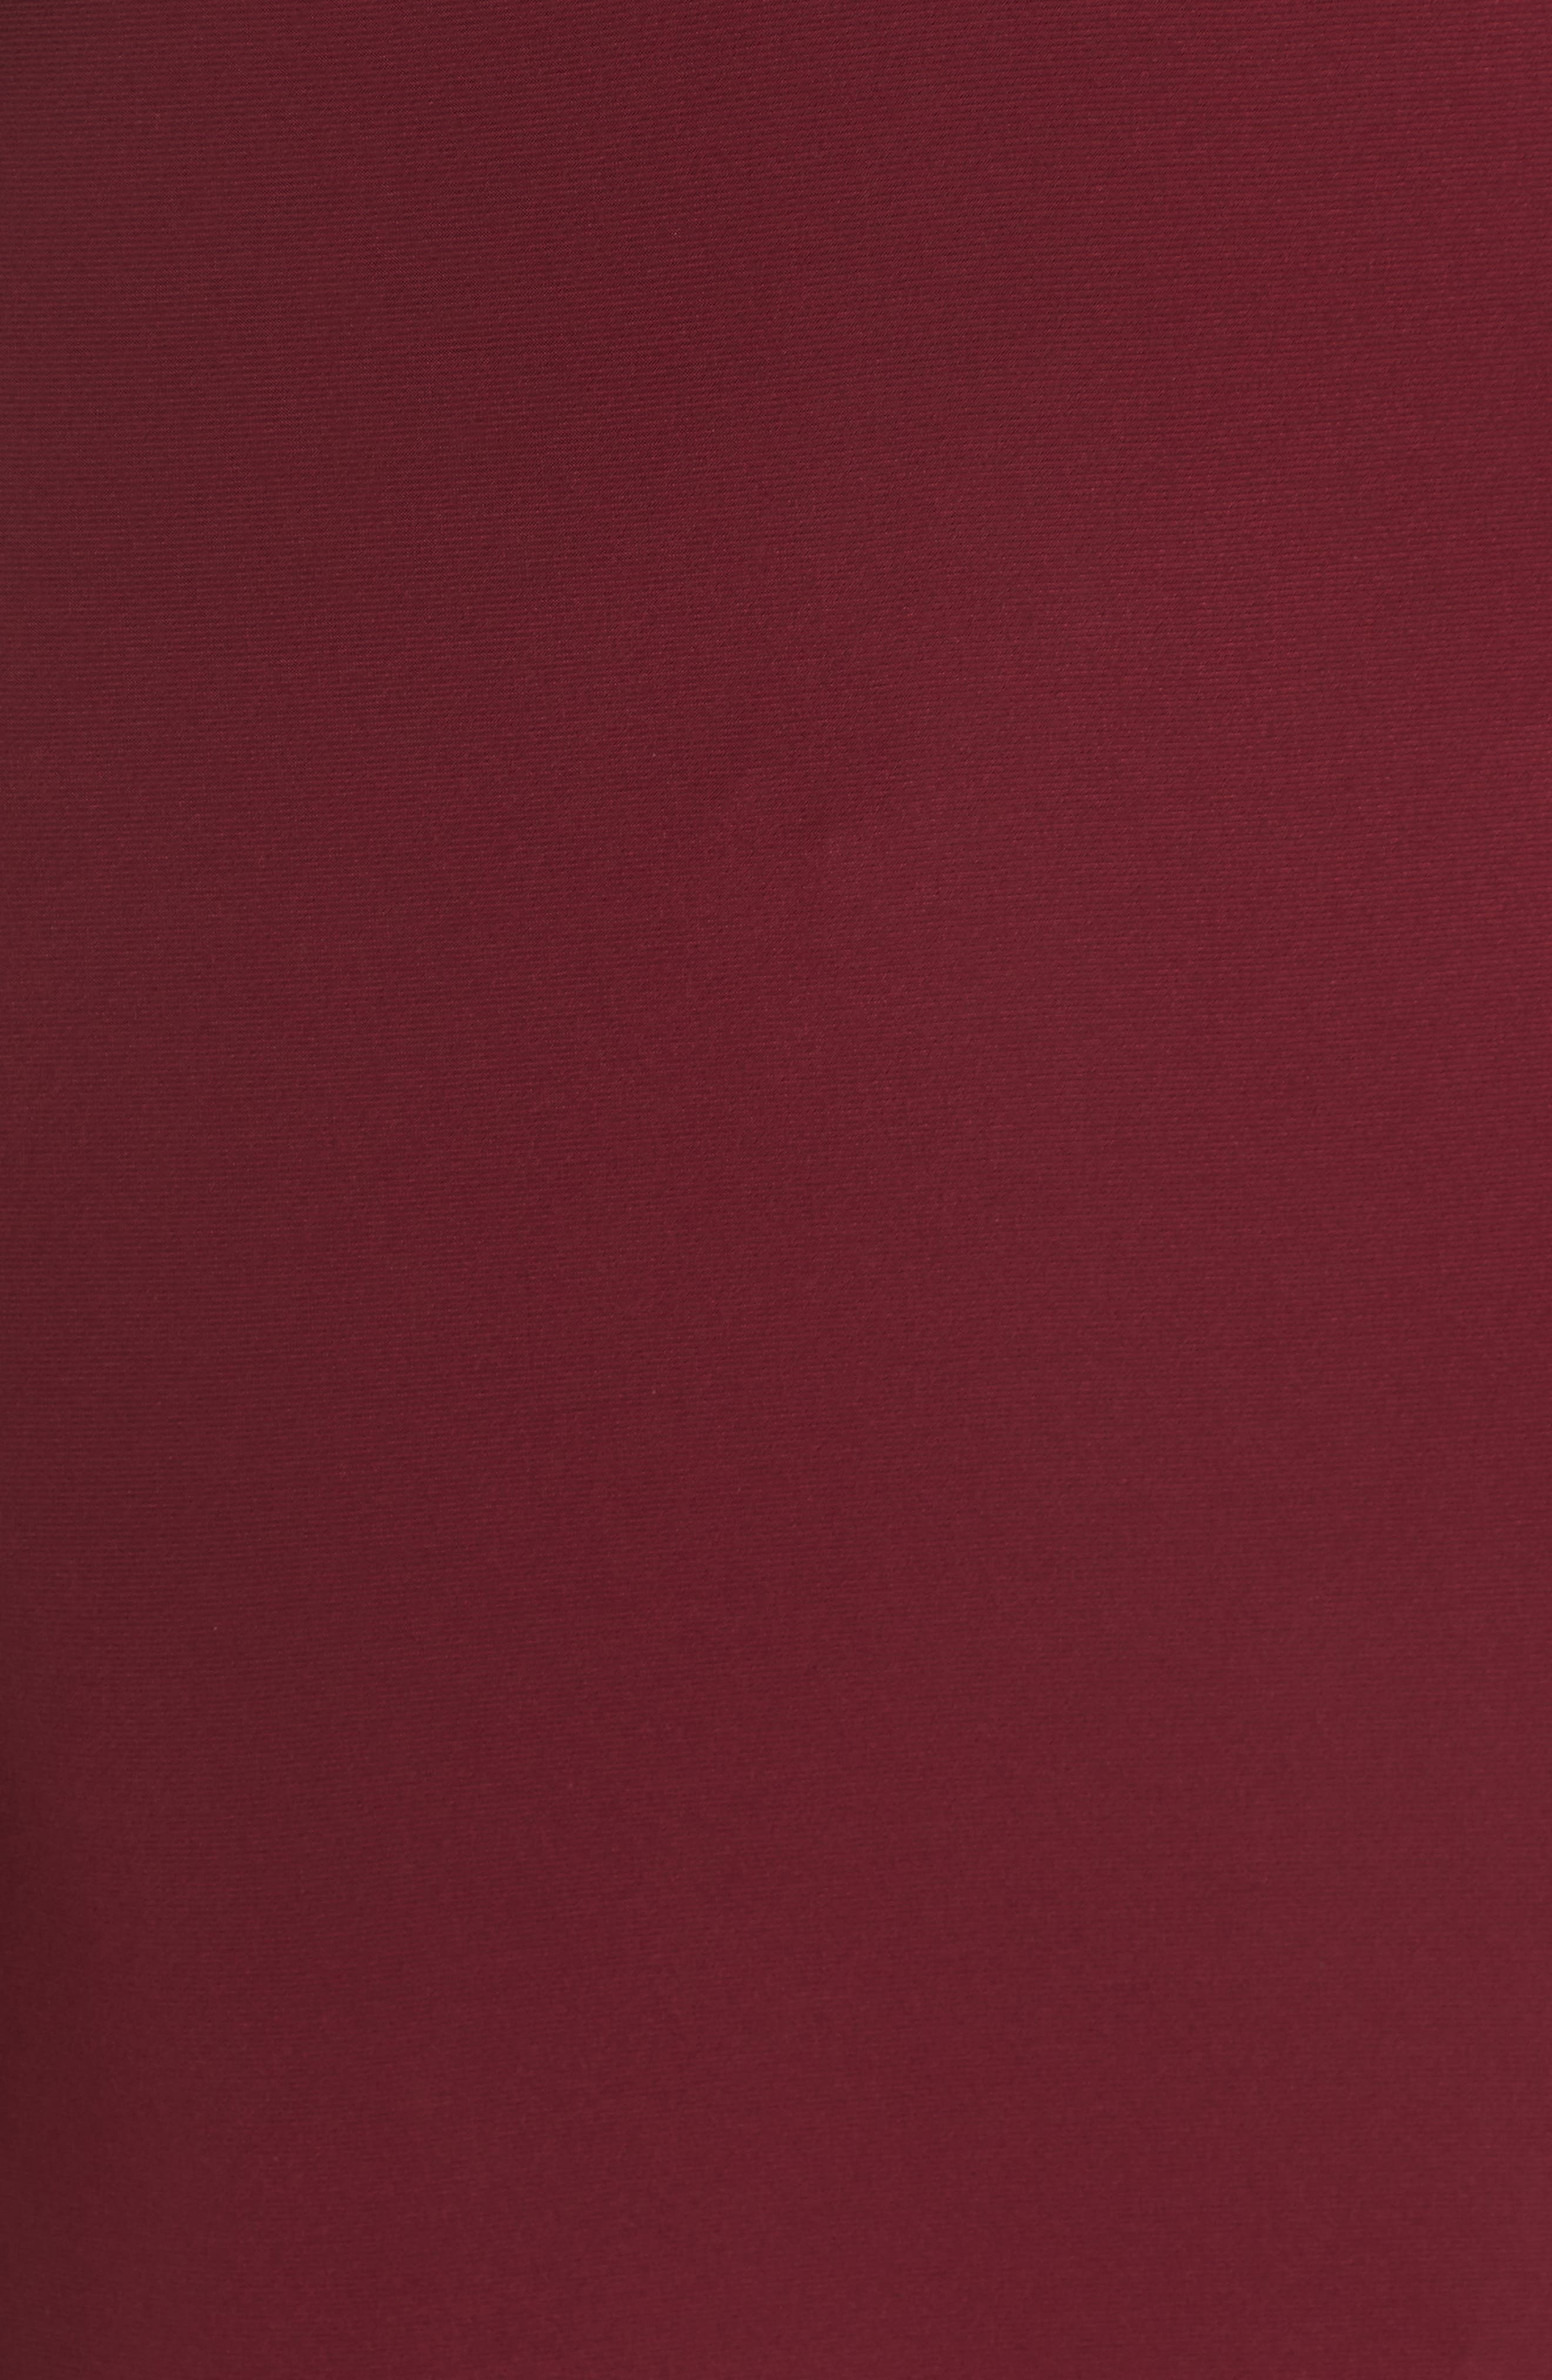 Embellished Illusion Gown,                             Alternate thumbnail 5, color,                             MERLOT